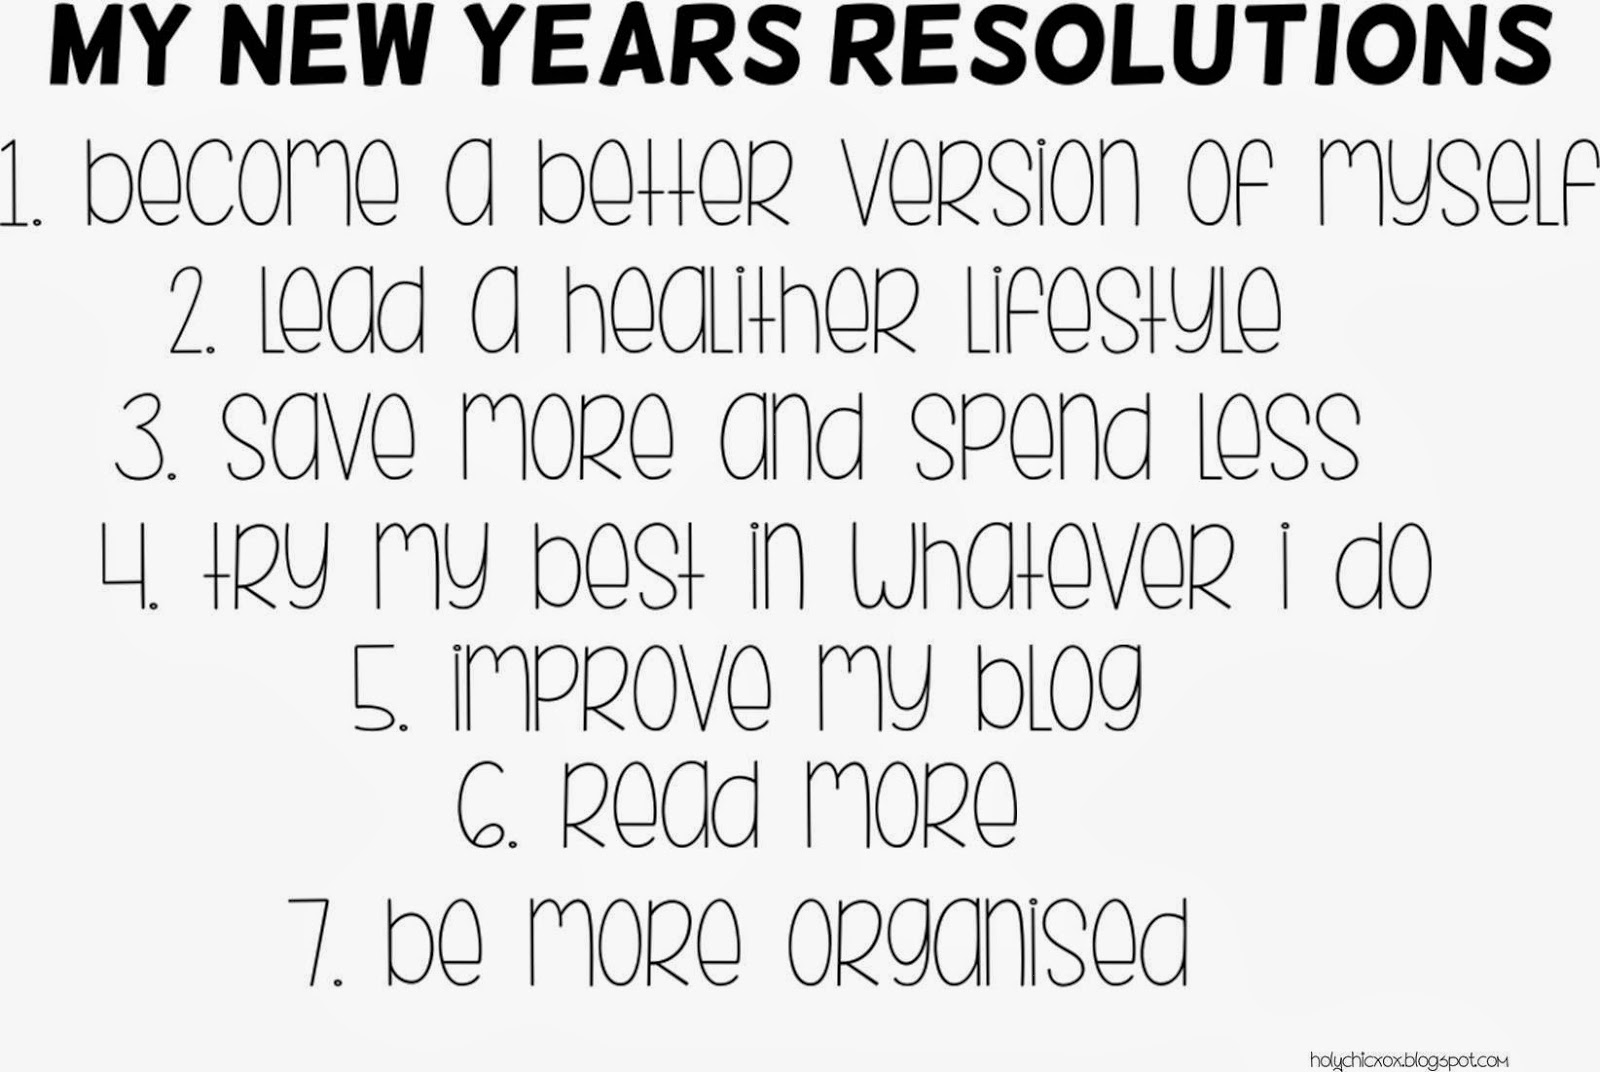 Essay on resolution of new year